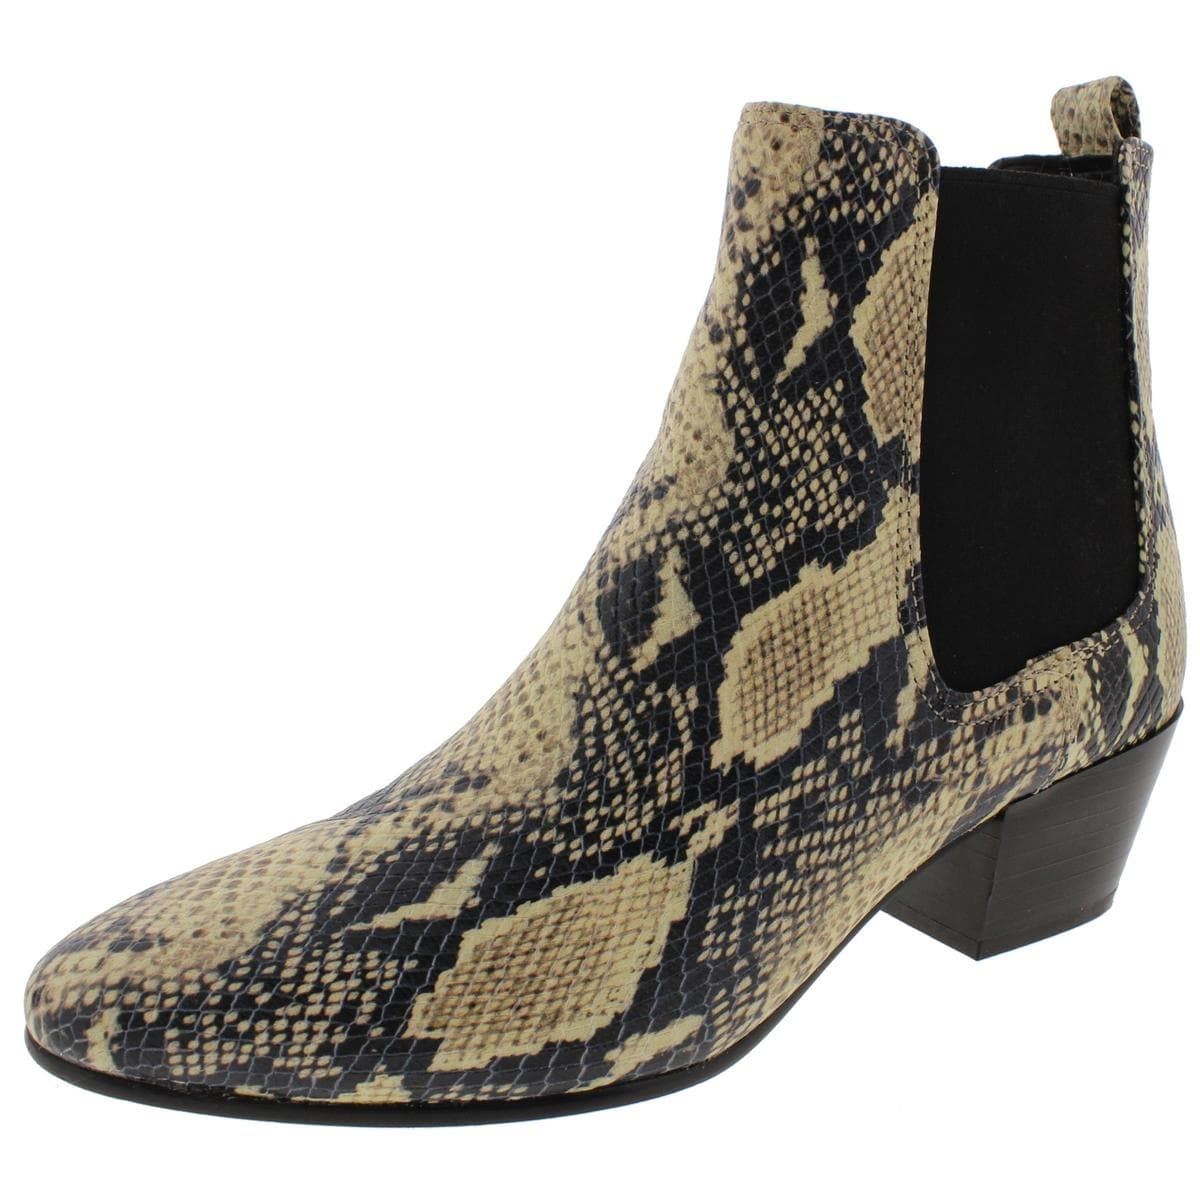 52a8cb09c Shop Sam Edelman Womens Reesa Booties Stretch Ankle - Ships To Canada -  Overstock.ca - 15080743